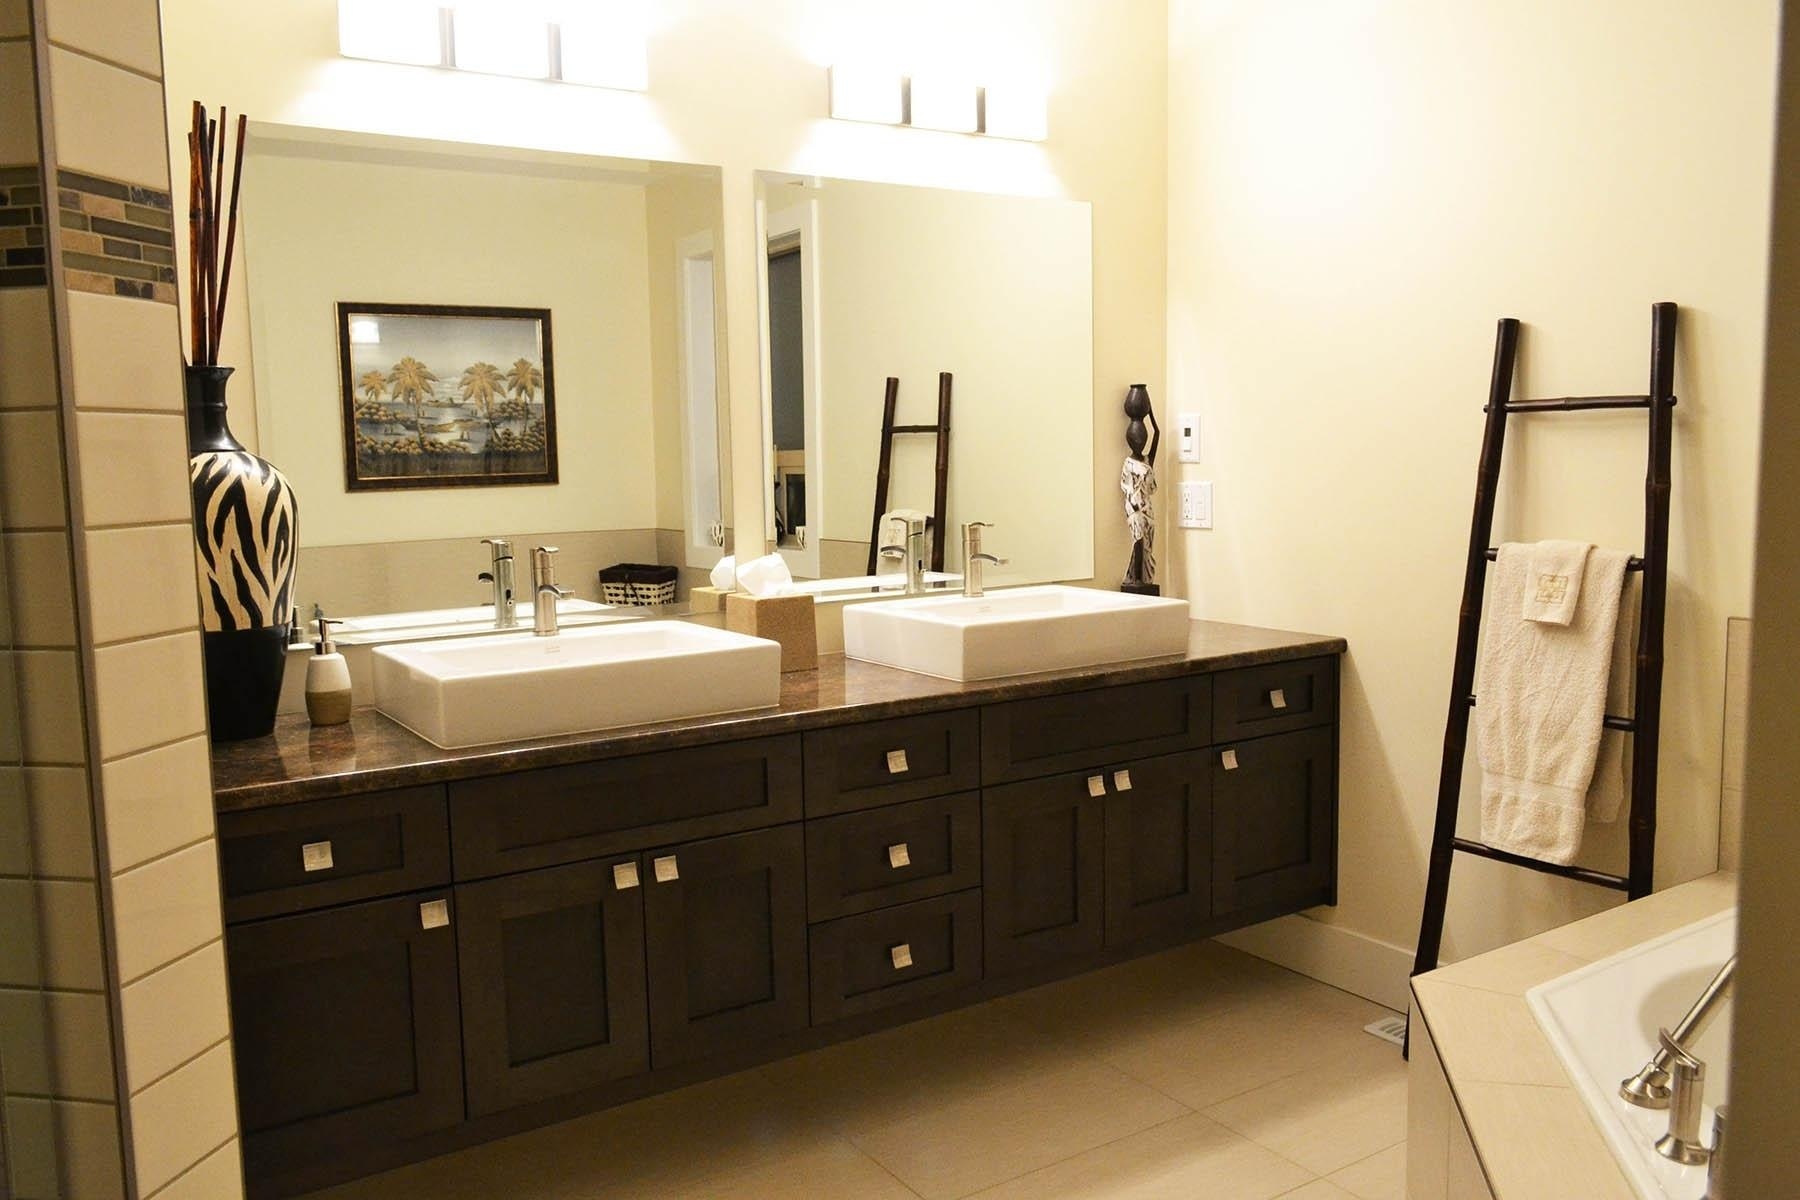 Bathroom : Beautiful Bathroom Mirror Ideas For A Small Bathroom Regarding Decorative Mirrors For Bathroom Vanity (Image 3 of 20)